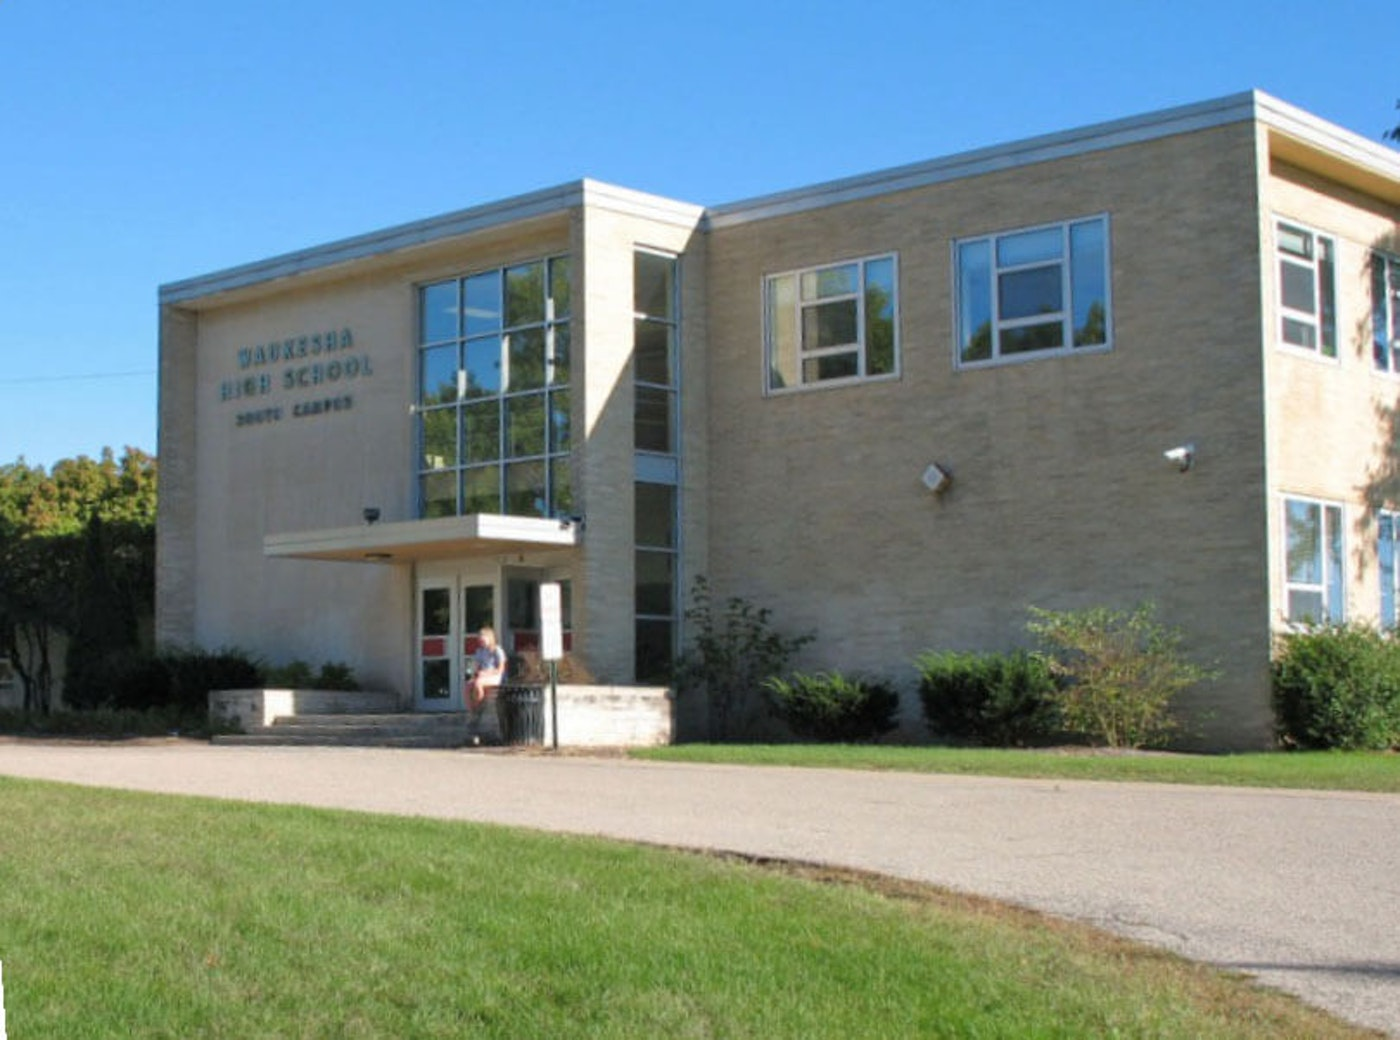 Call for Waukesha to Add Diversity to Staff, Curriculum Gains 1,100 Signatures in Three Days